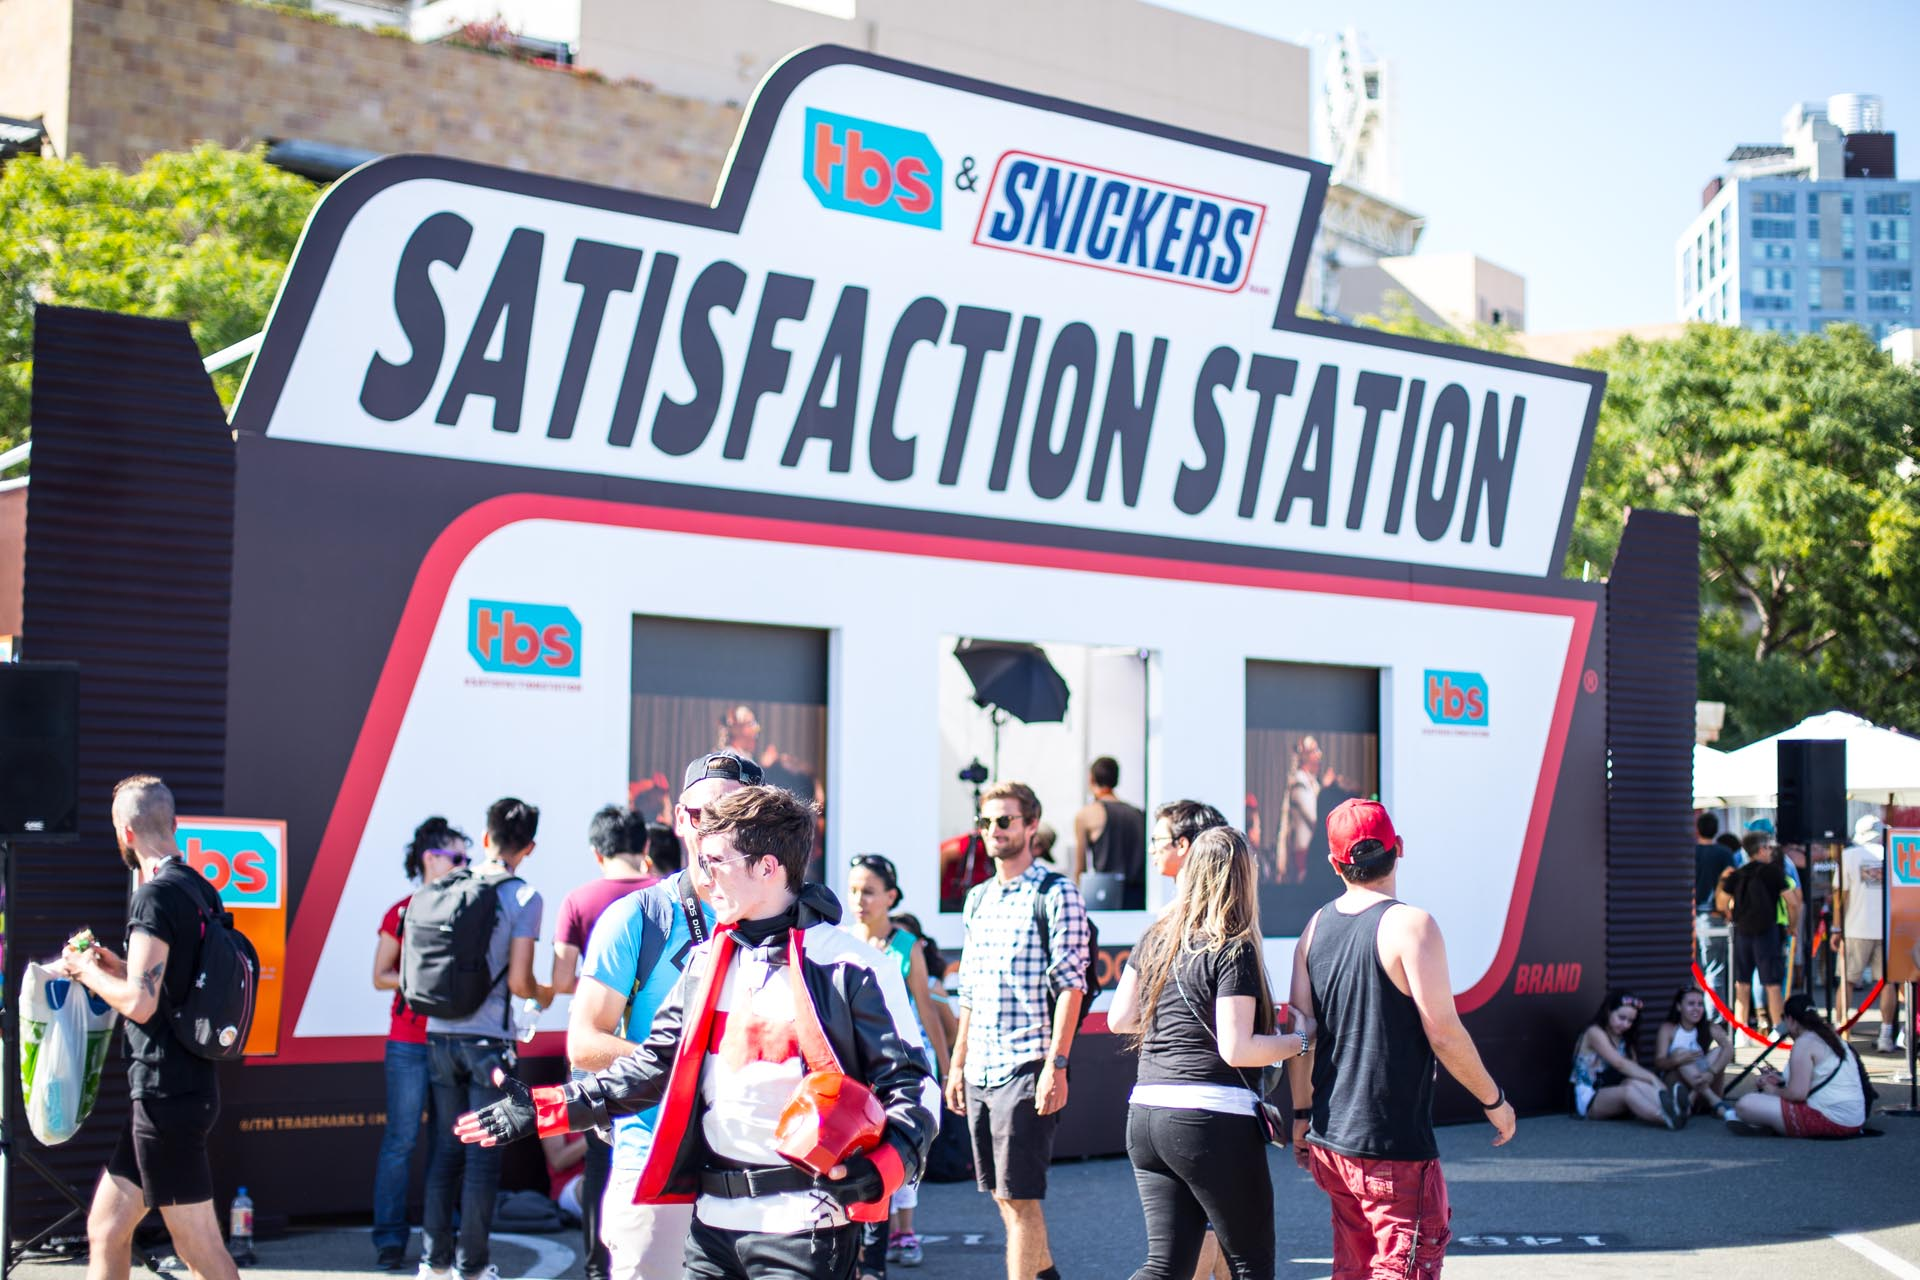 TBS & Snickers Satisfaction Station